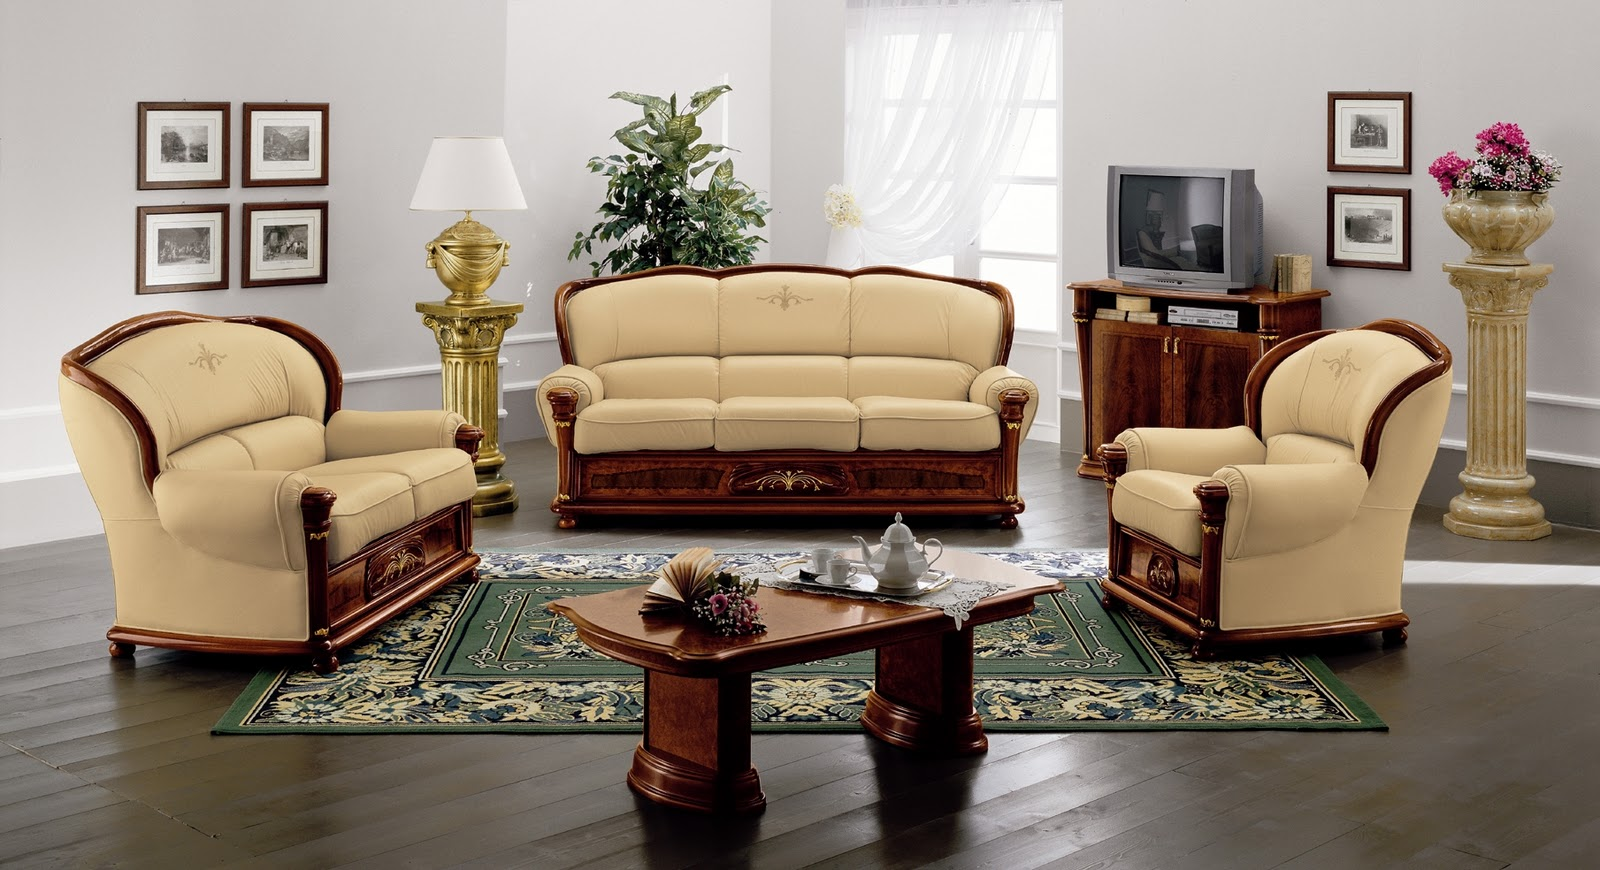 Living room sofa design photos living room interior designs for Drawing room furniture set